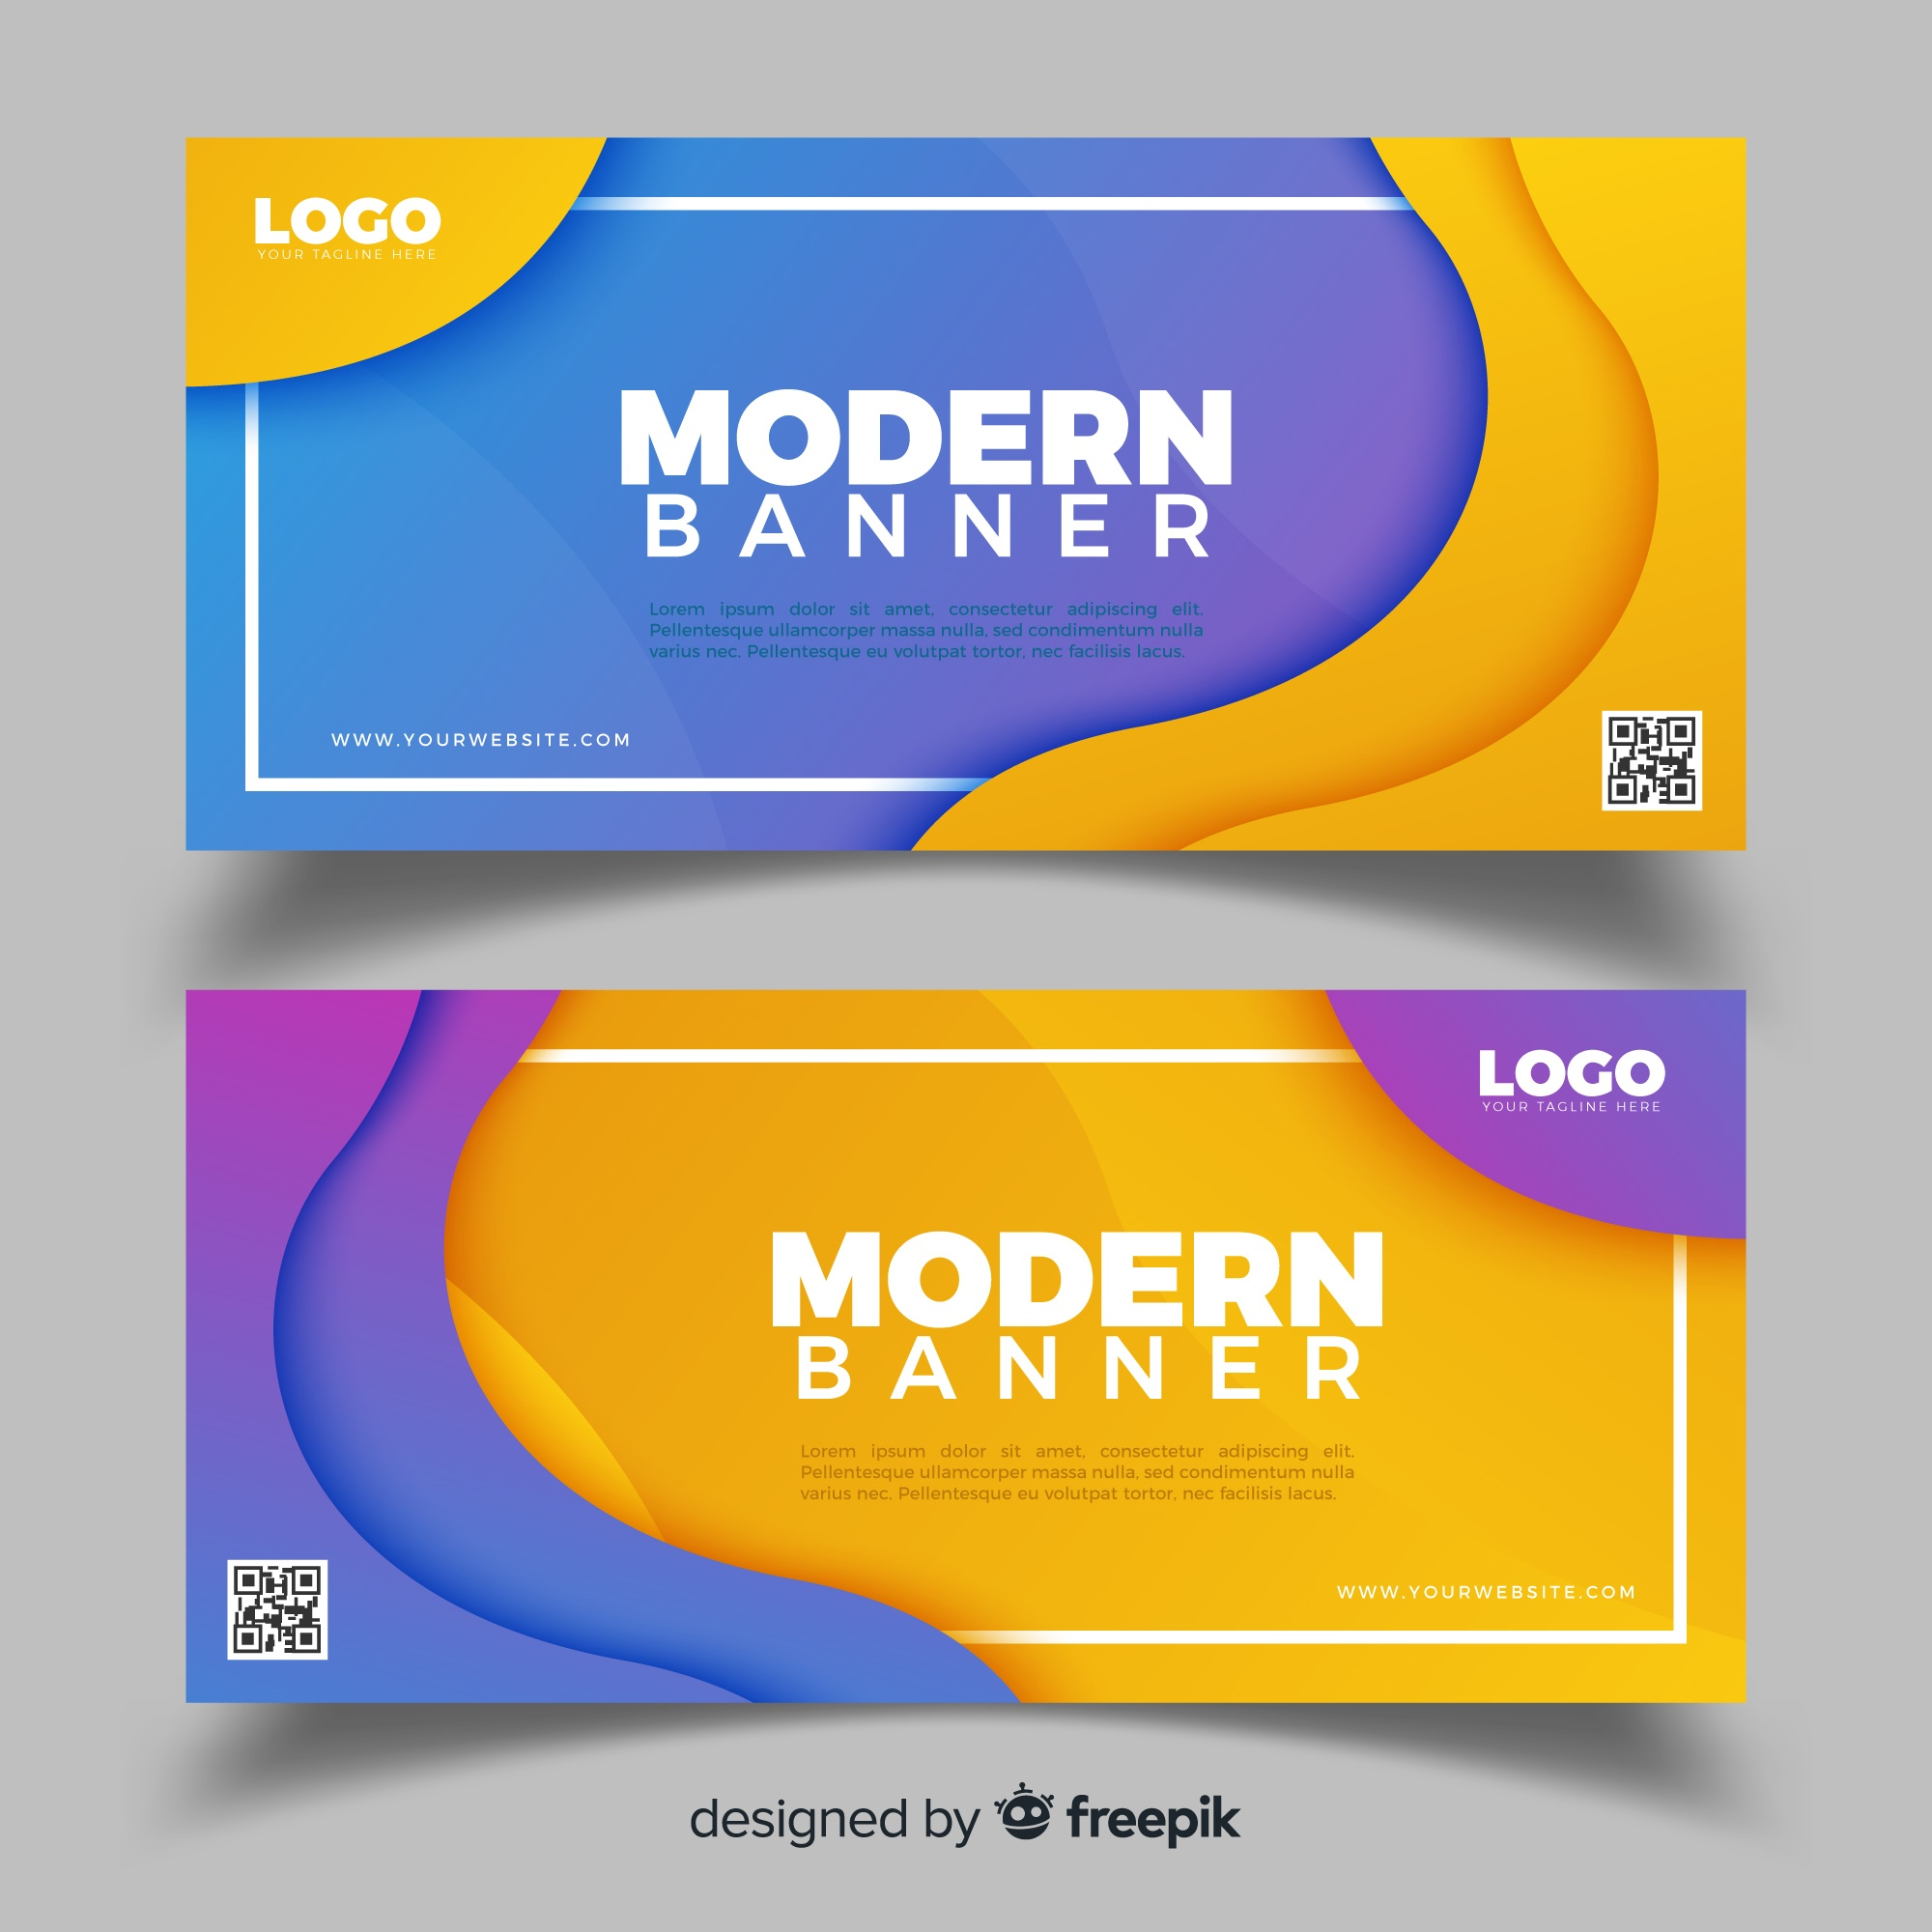 Abstract banners with flat design